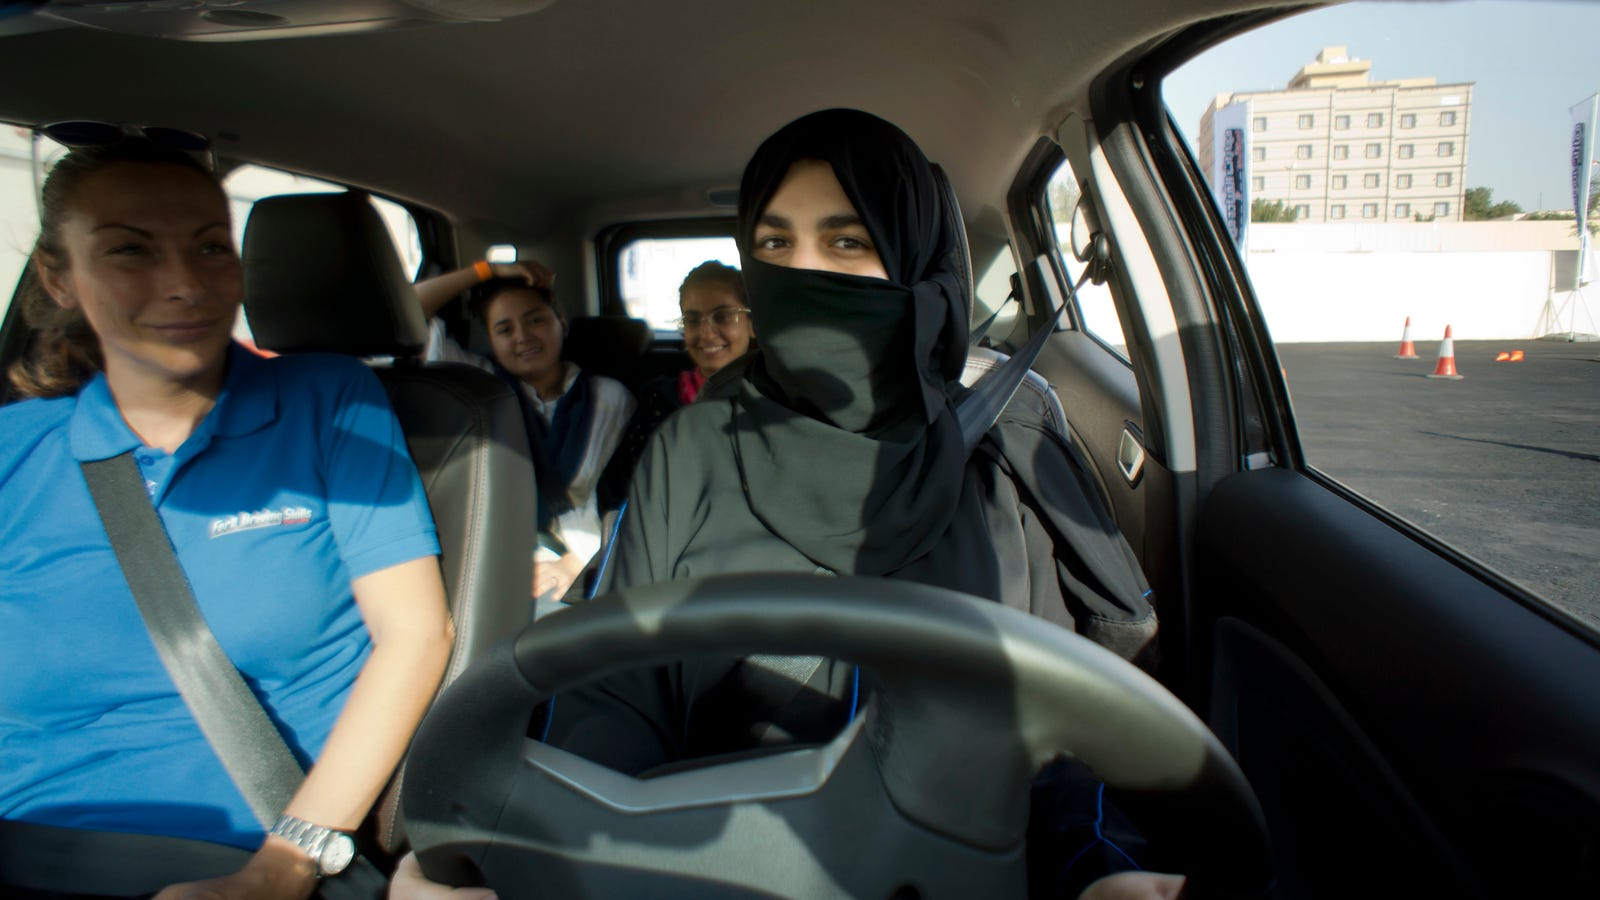 b171bomzjvd95s0y3lcu - 1000's Of Saudi Ladies Are Signing Up For Driving Classes For The First Time